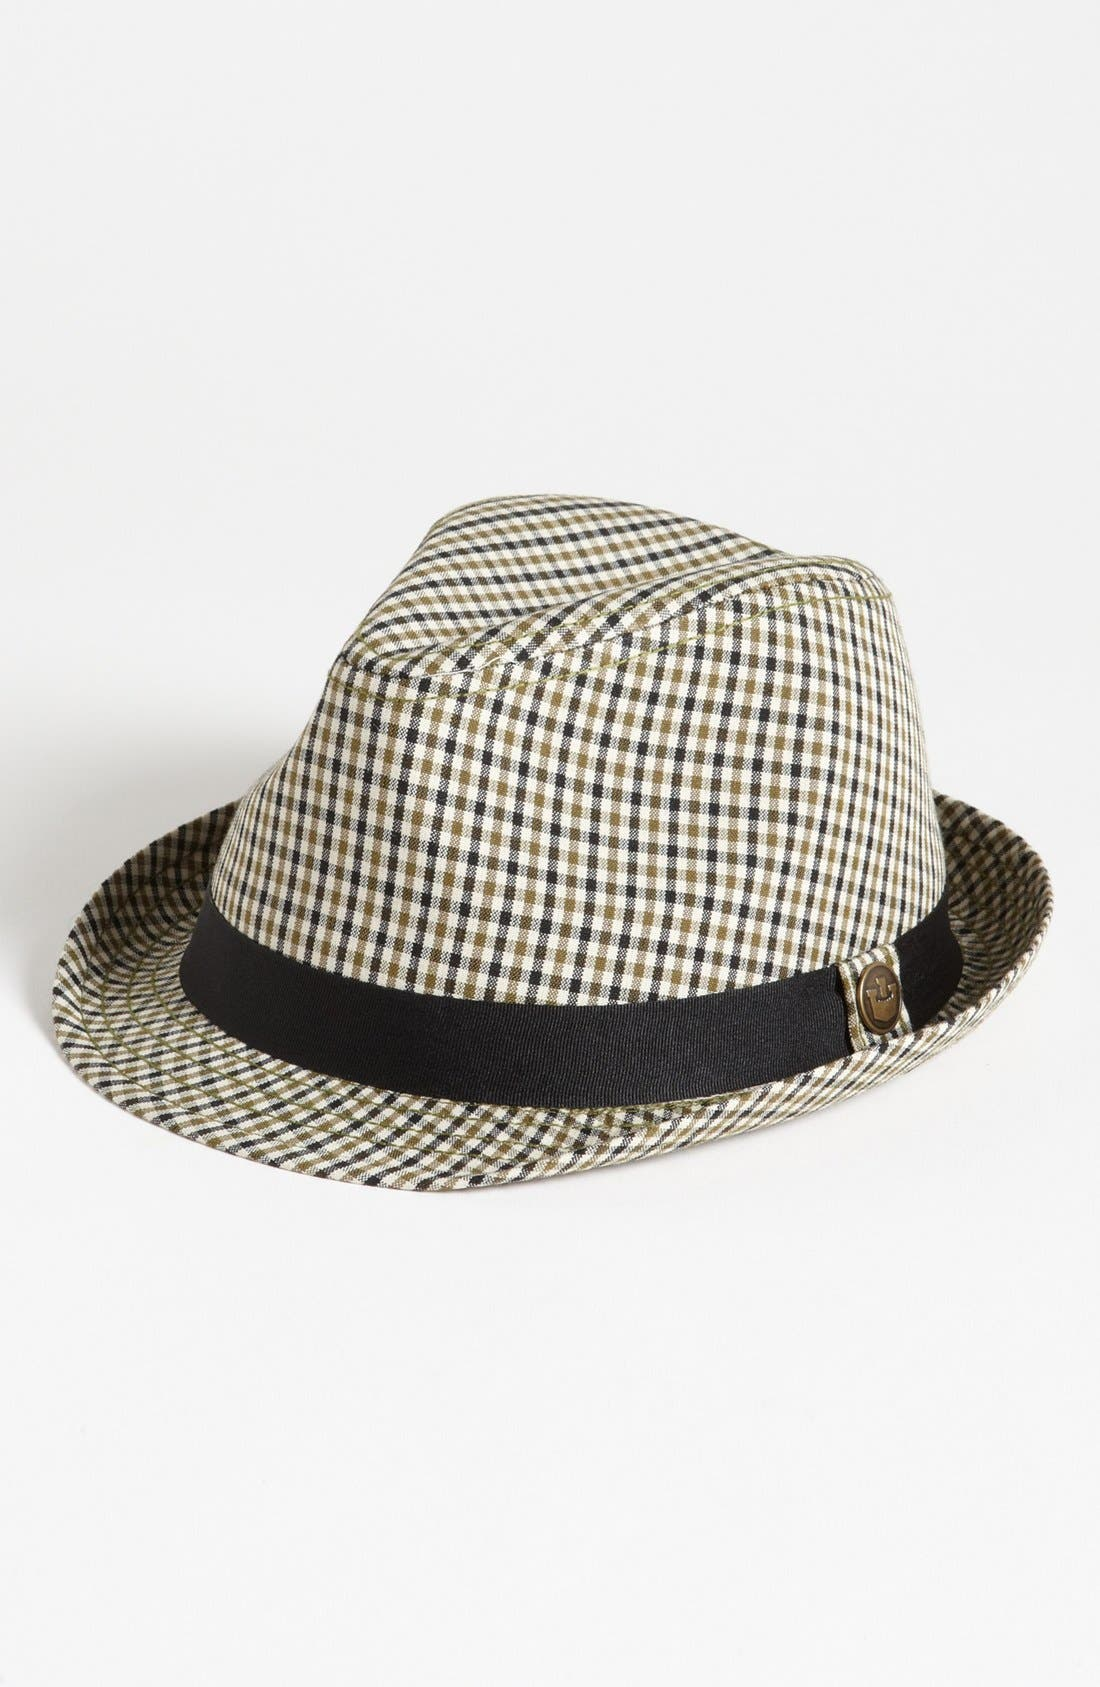 Main Image - Goorin Brothers 'The South' Fedora